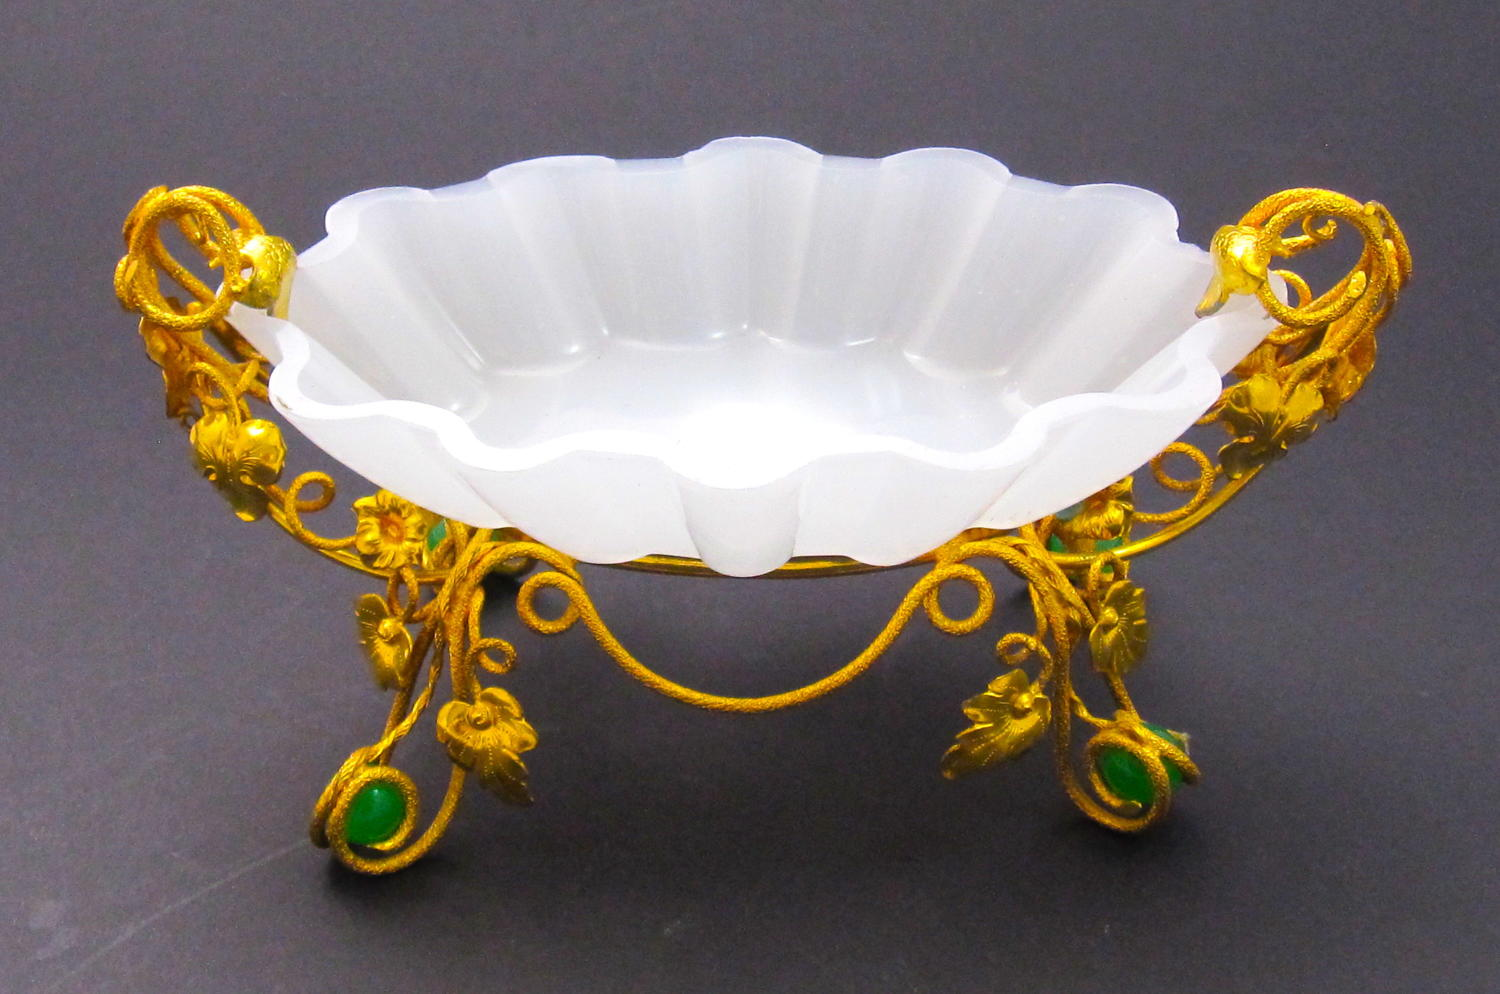 Antique Palais Royal Opaline Glass Dish with Green Opaline Baubles